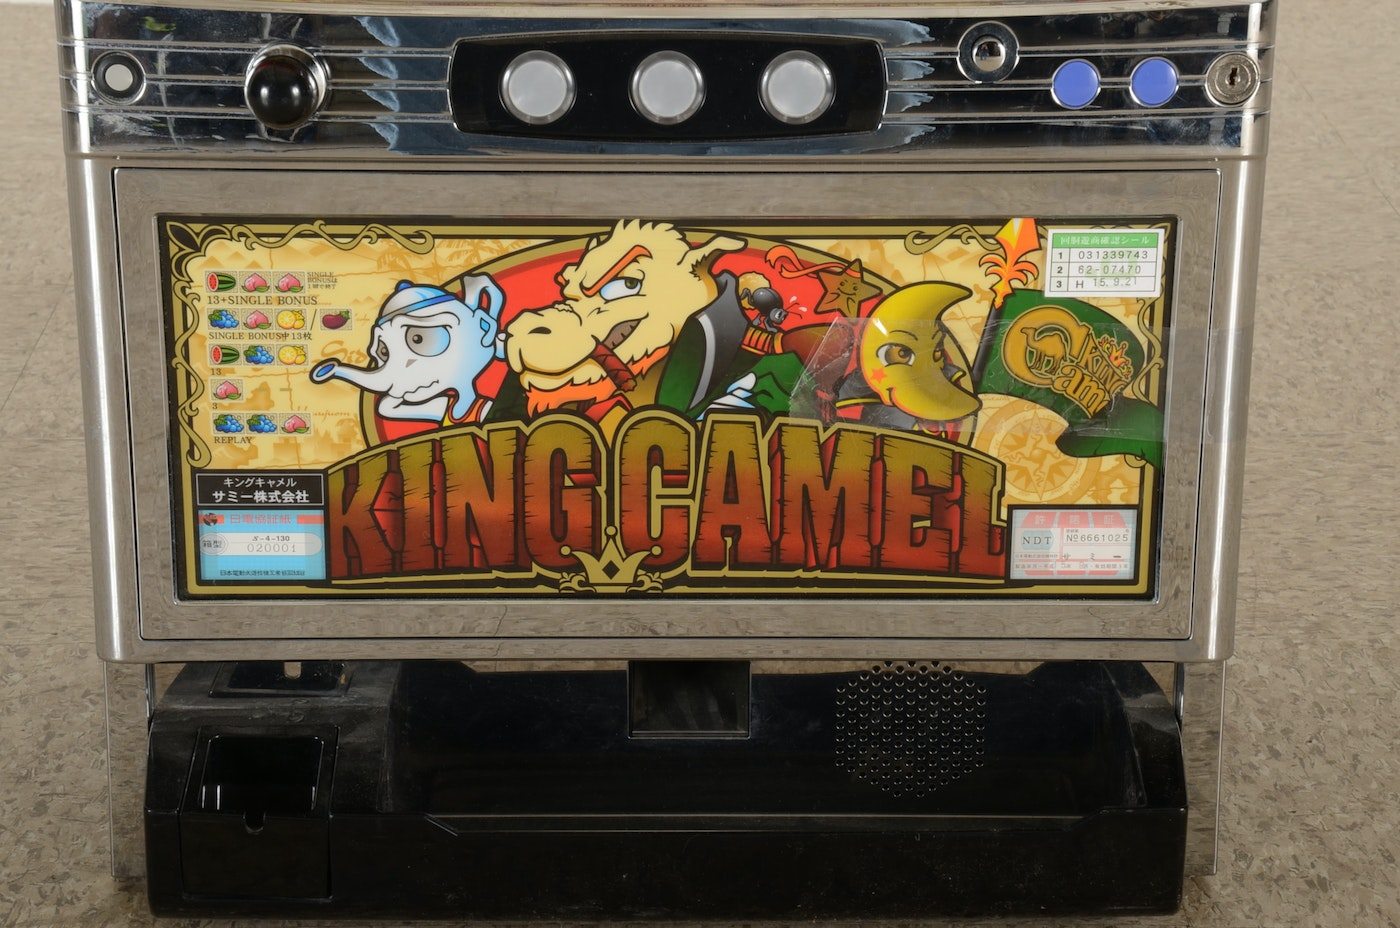 King Camel Slot Machine